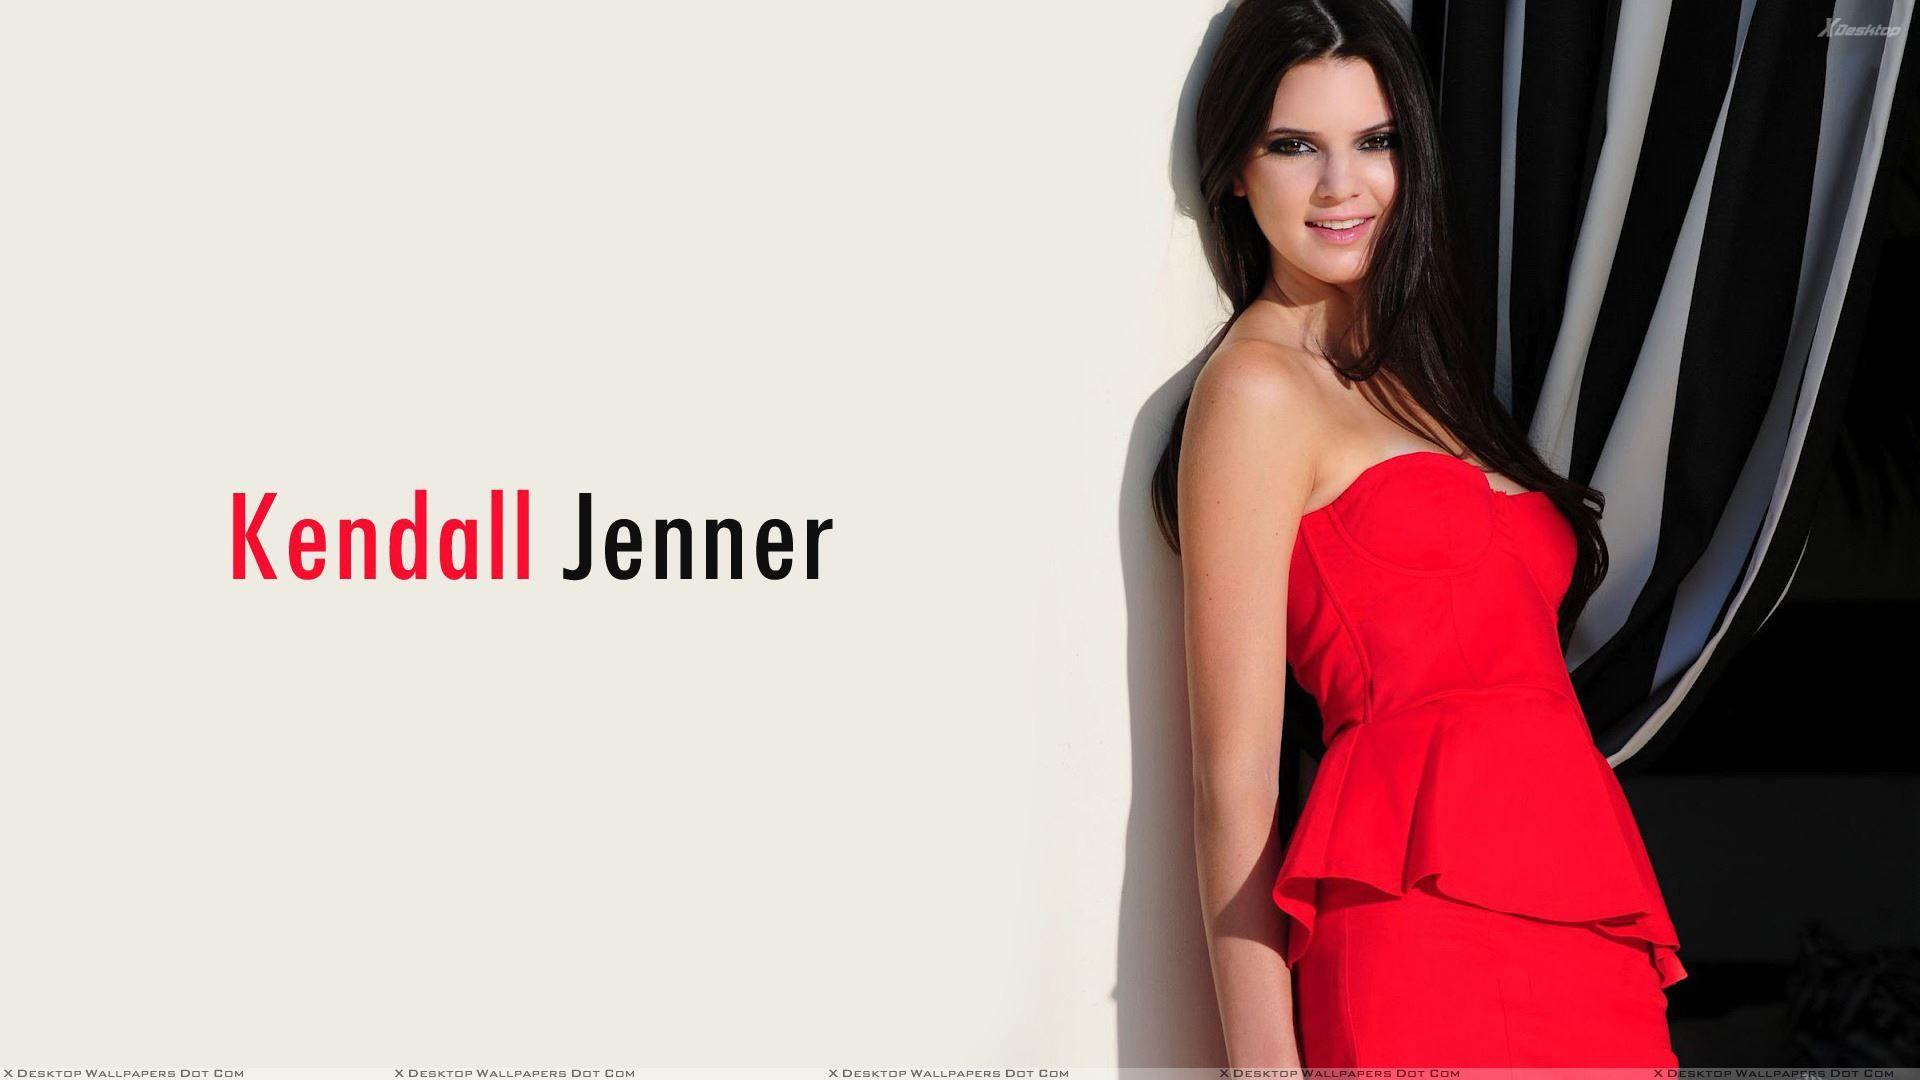 Kendall Jenner Wallpapers, Photos & Image in HD